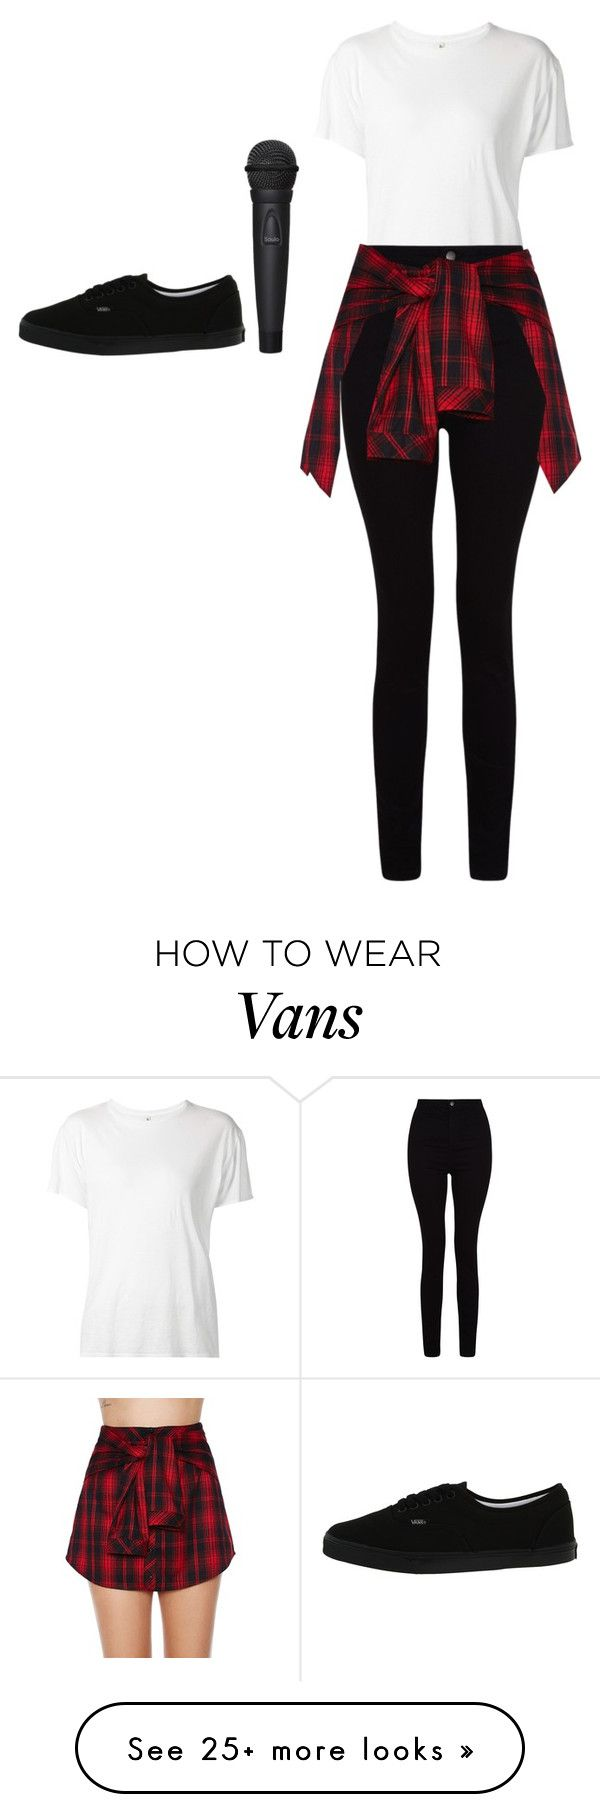 """Untitled #5430"" by adi-pollak on Polyvore featuring R13, Mustard Seed and Vans"